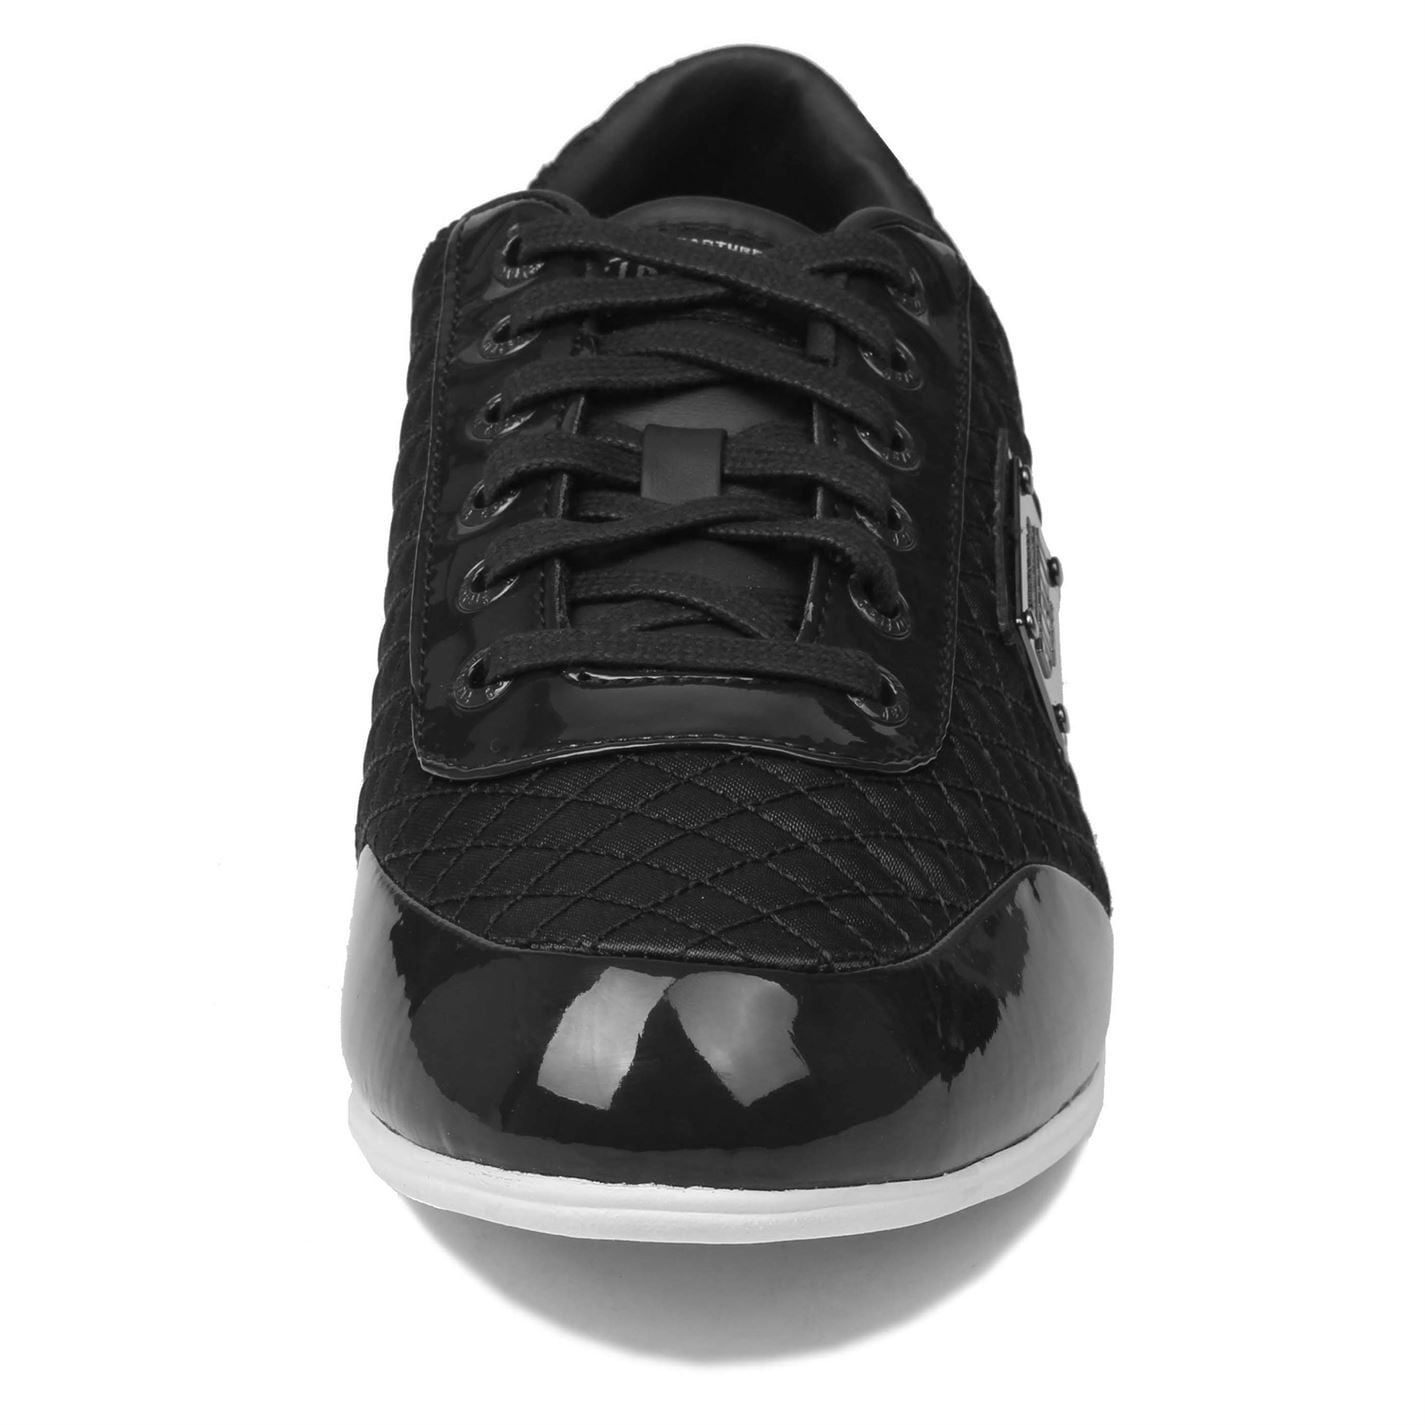 Firetrap Mens Dr Domello Lace Up Trainers Sports Shoes Casual Footwear